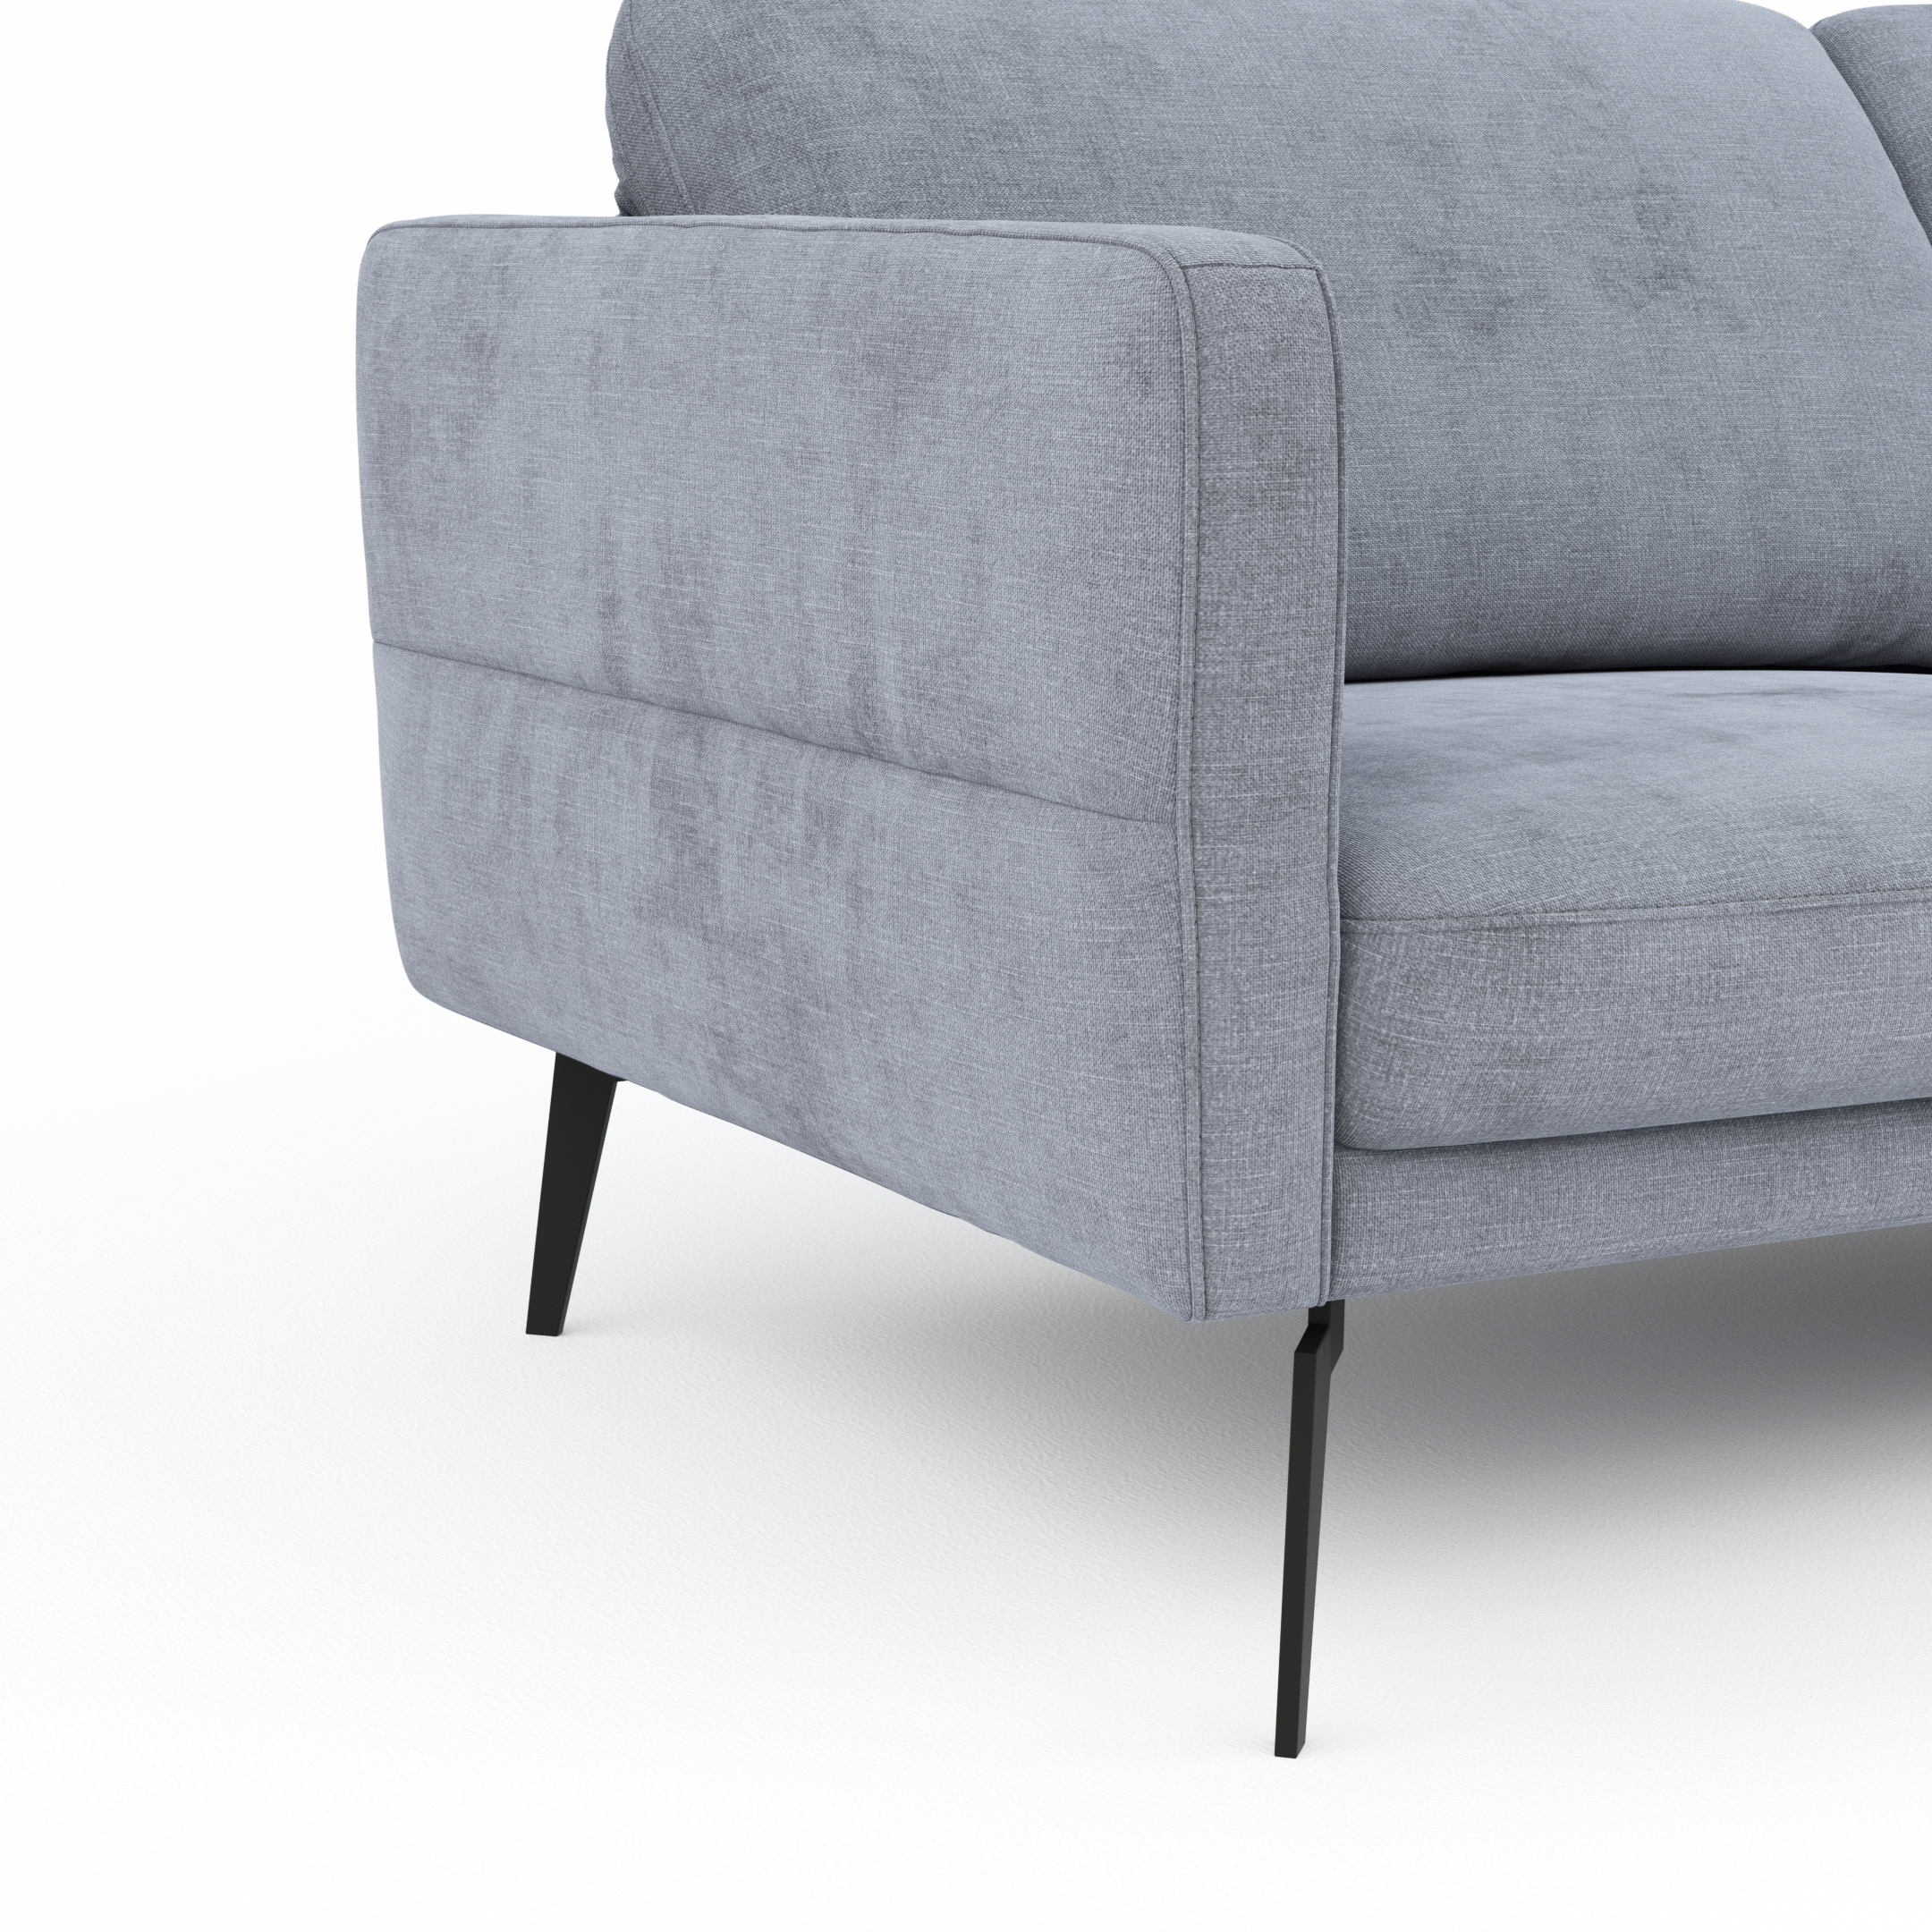 Global Select Sofa Estrela detailbild 1 104244 | Homepoet